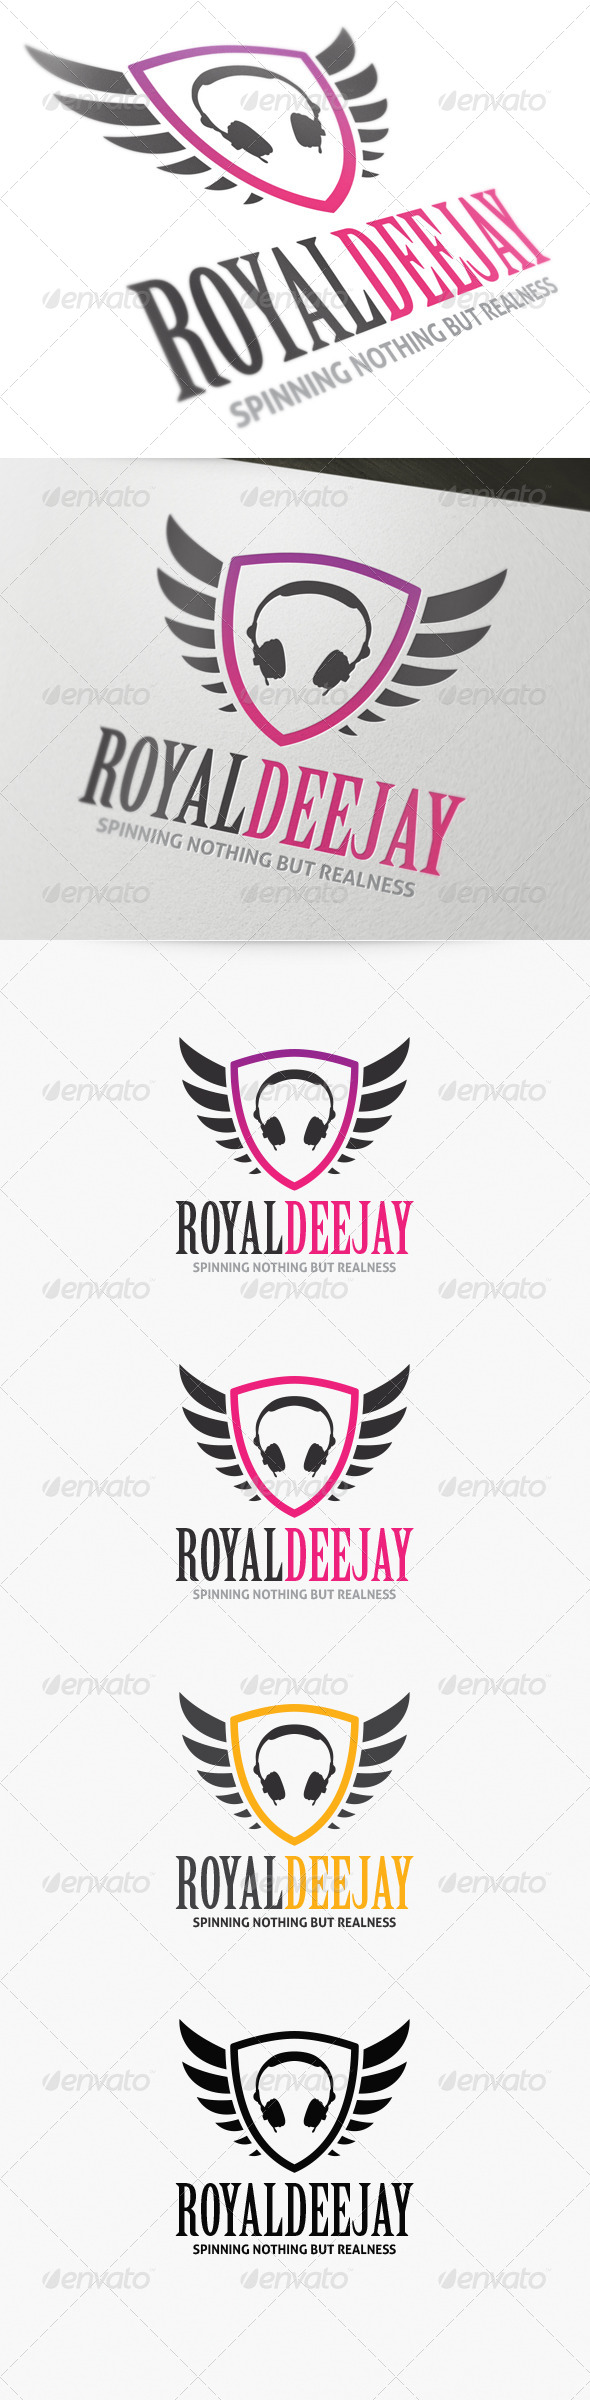 GraphicRiver Royal DJ Logo 4136693